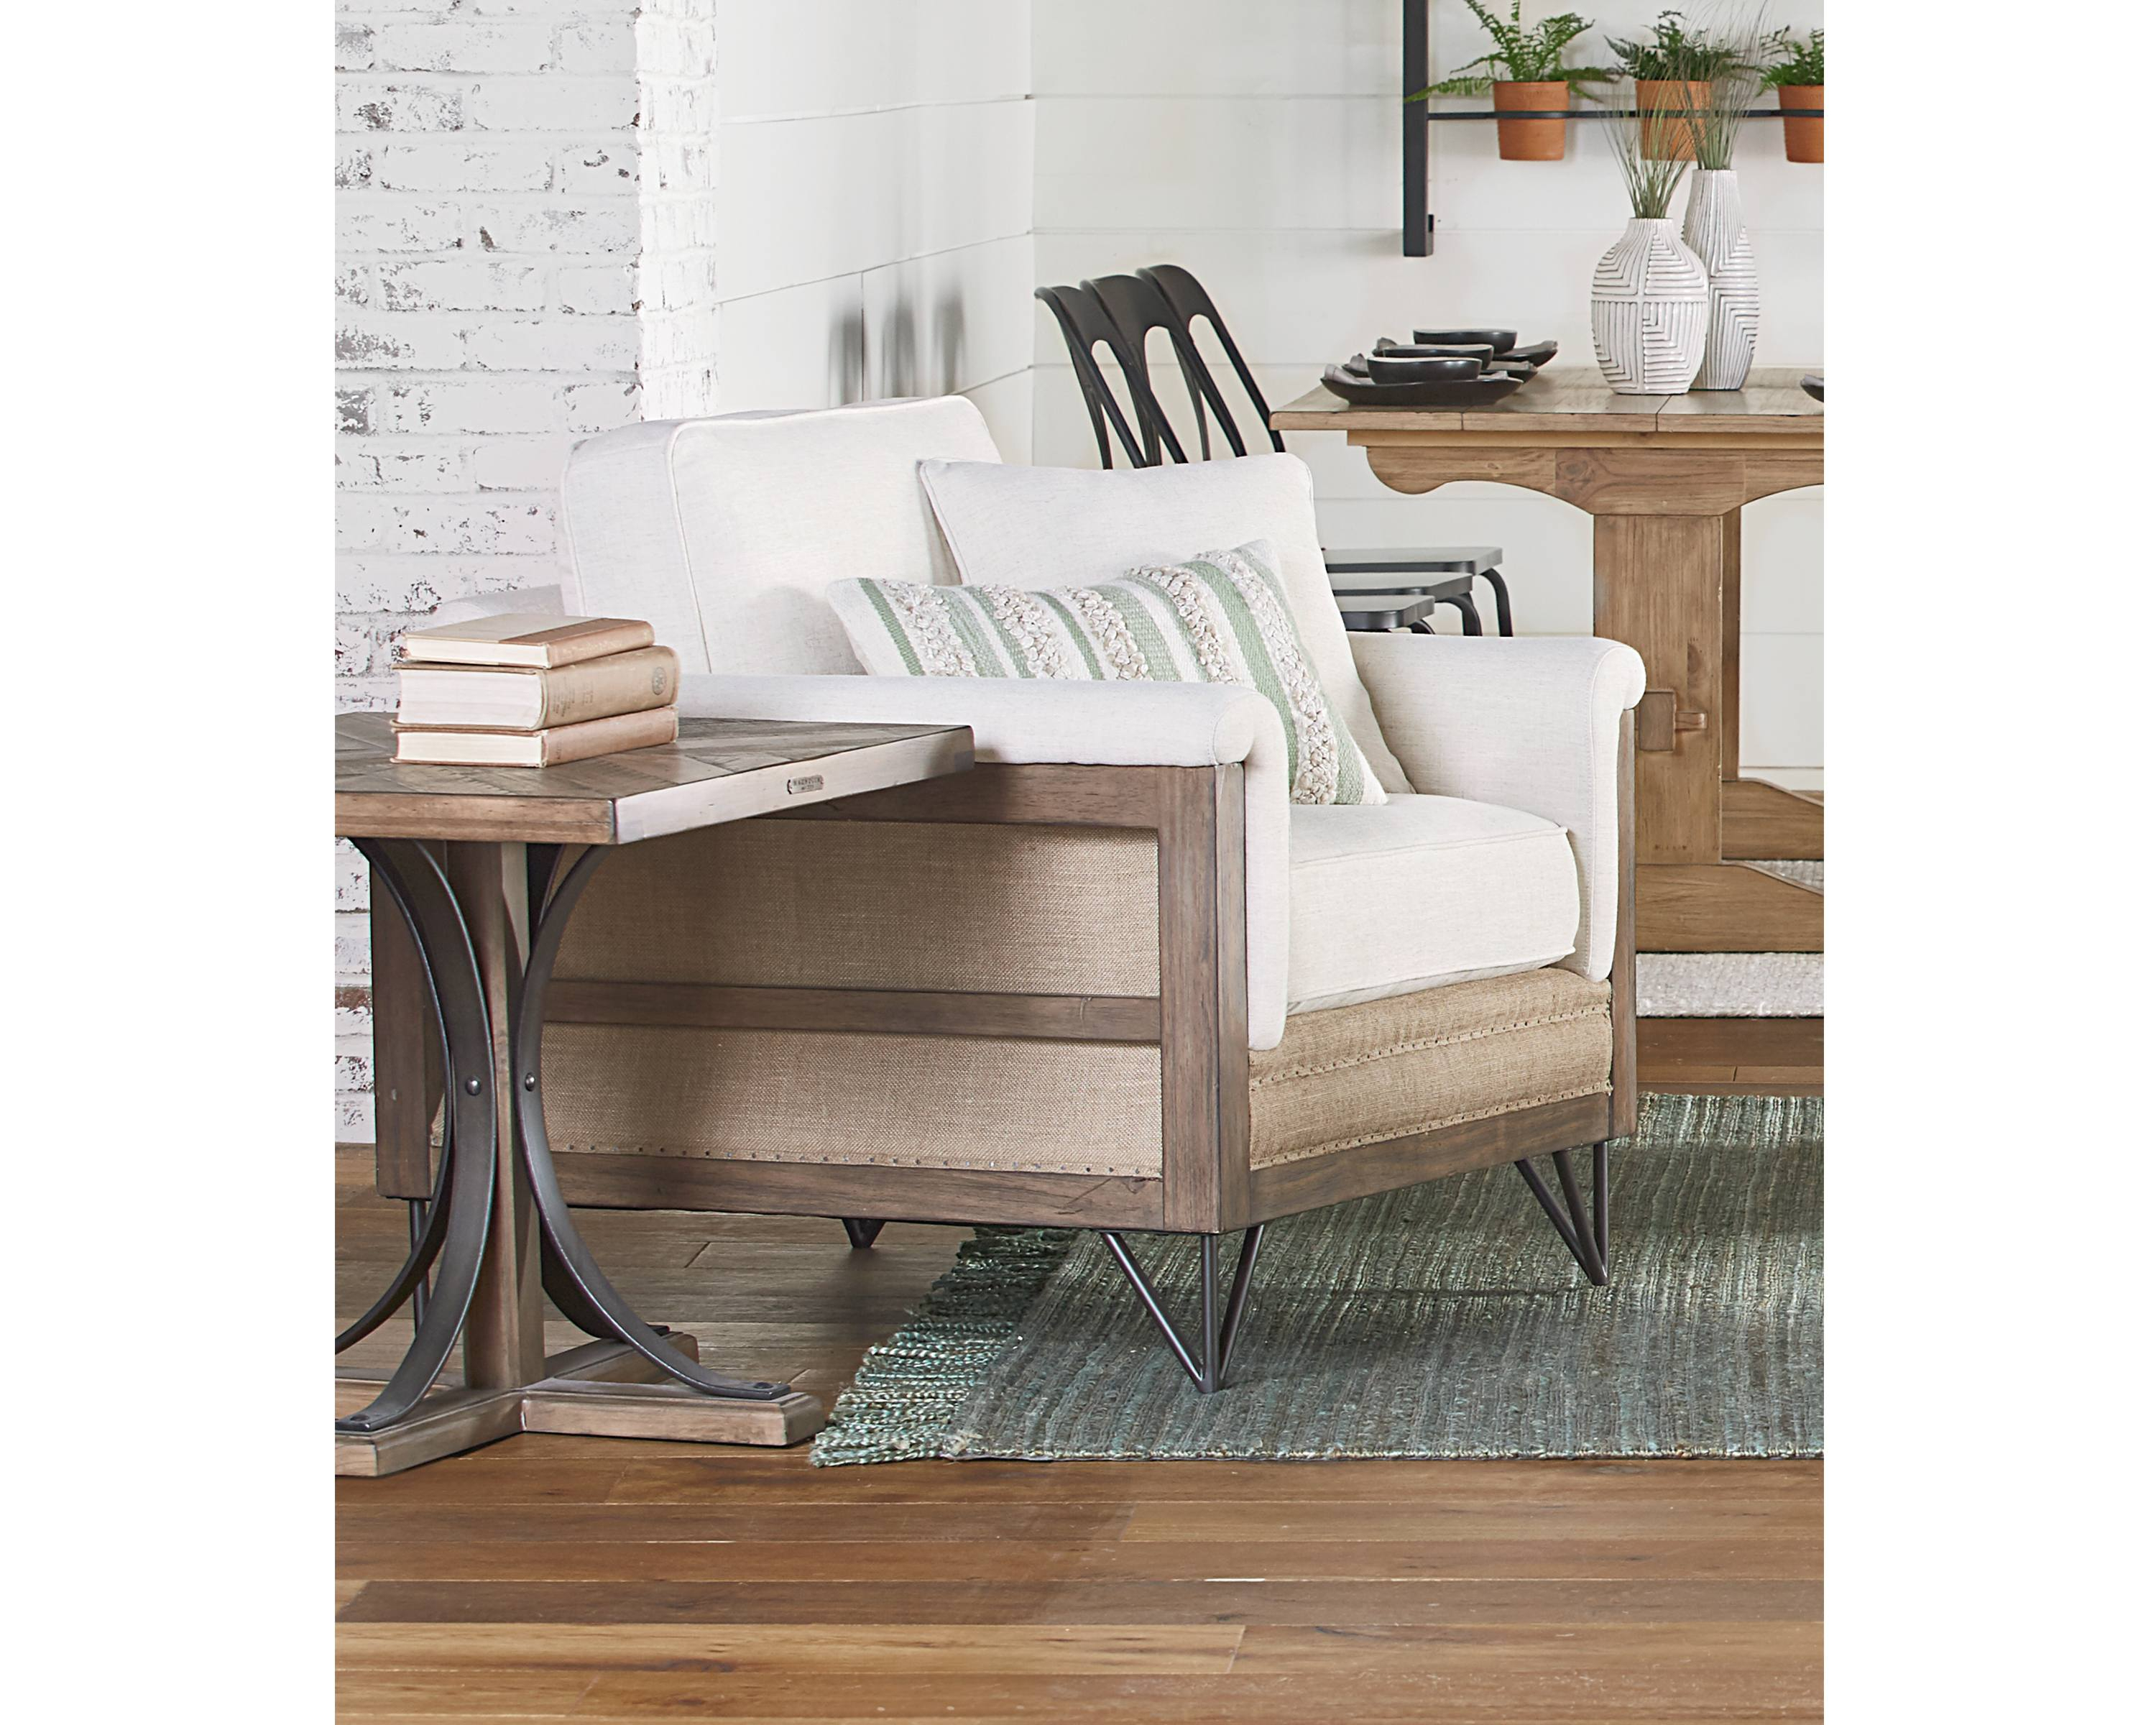 Paradigm Chair – Magnolia Home Throughout Magnolia Home Paradigm Sofa Chairs By Joanna Gaines (View 10 of 25)